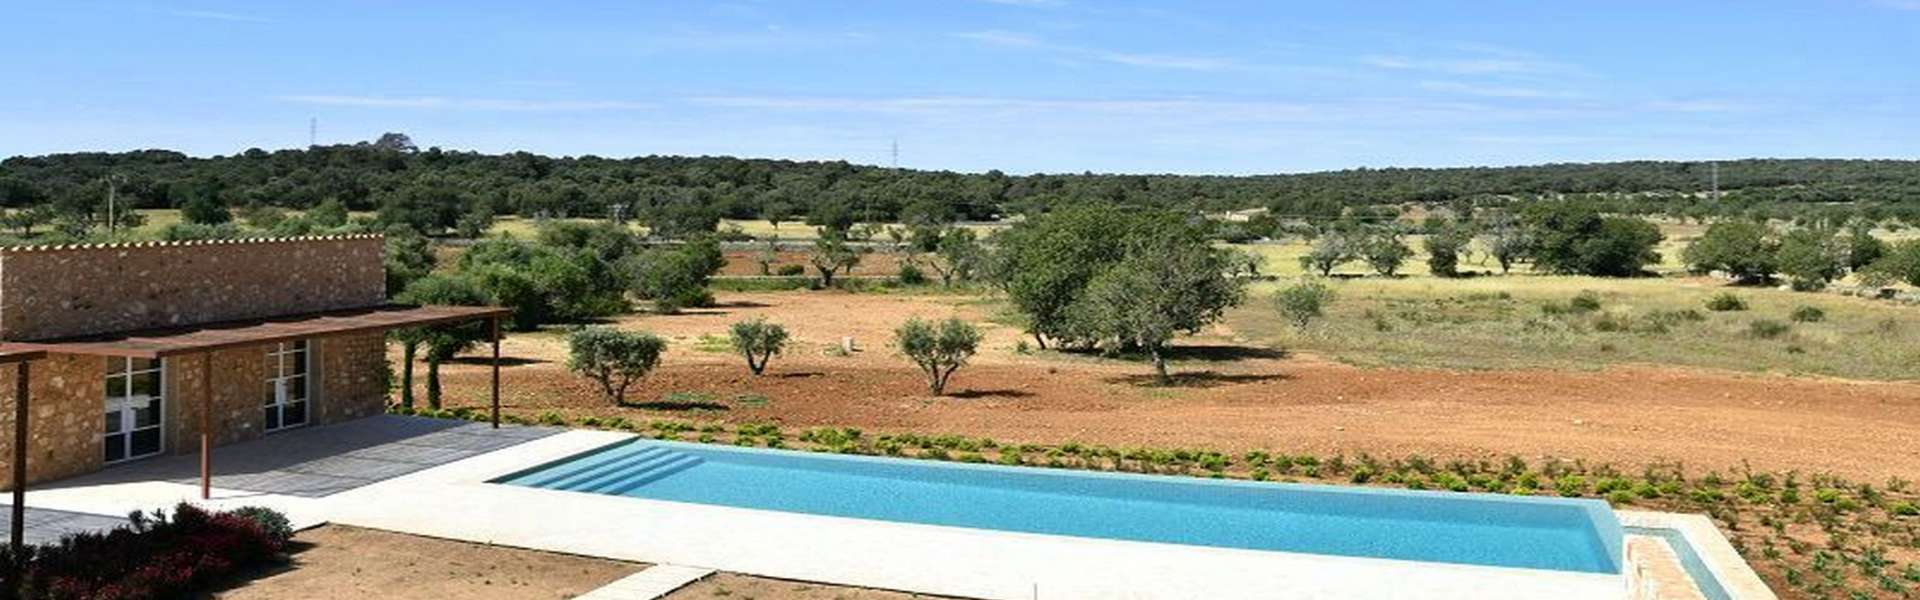 Santanyí - Modern new built country house with far view